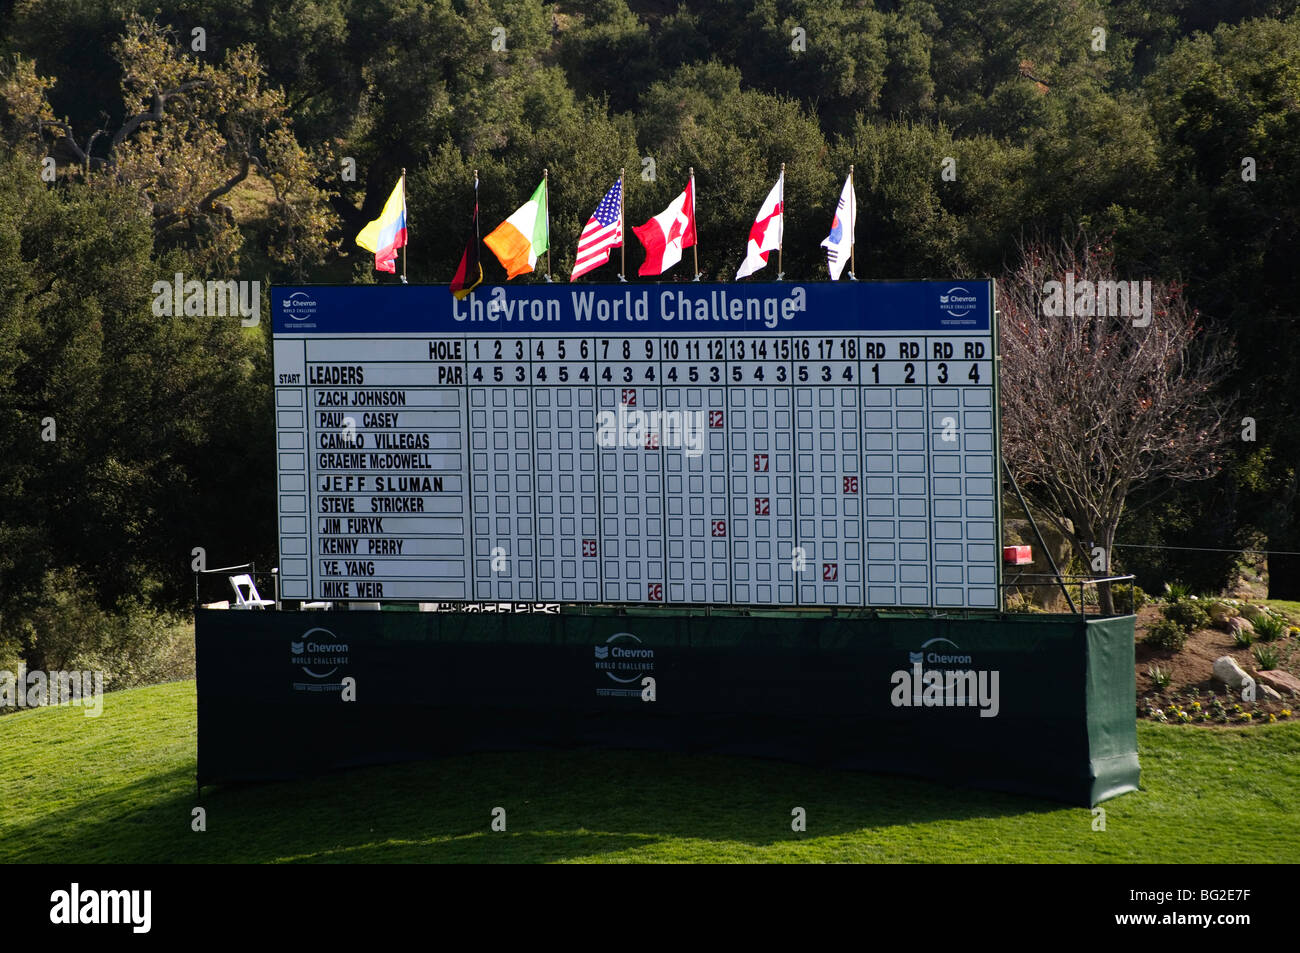 Scoreboard for the Pro Am round at the Chevron World Challenge at Sherwood Country club. - Stock Image